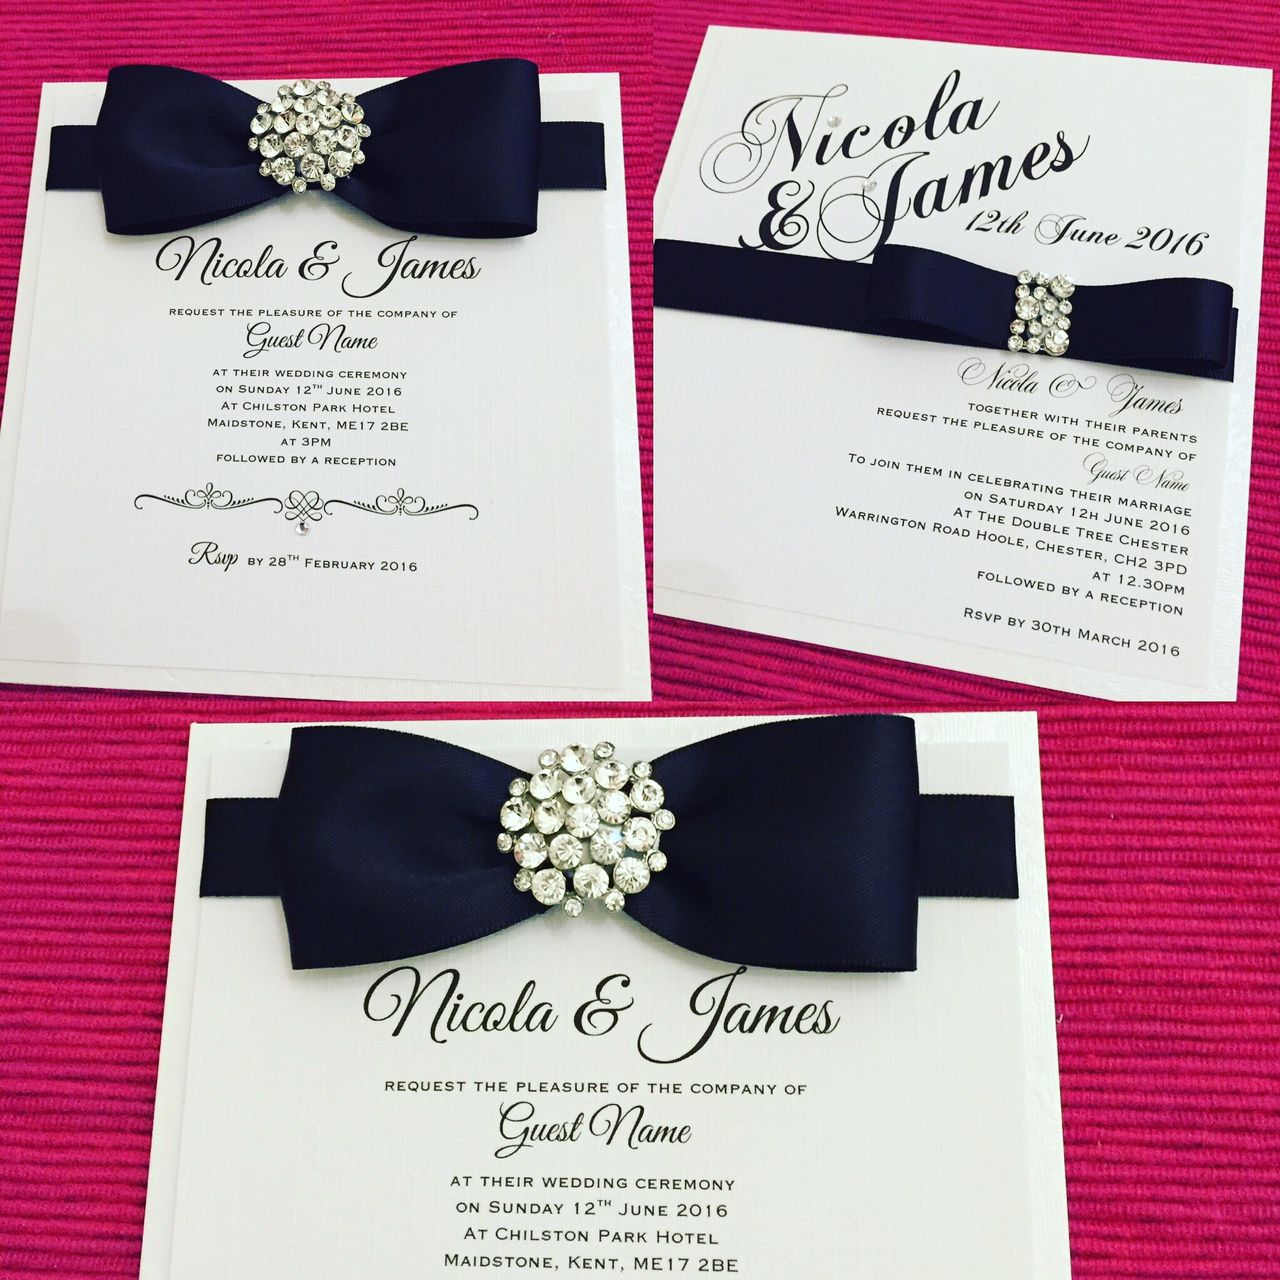 stylish and luxurious wedding invitations